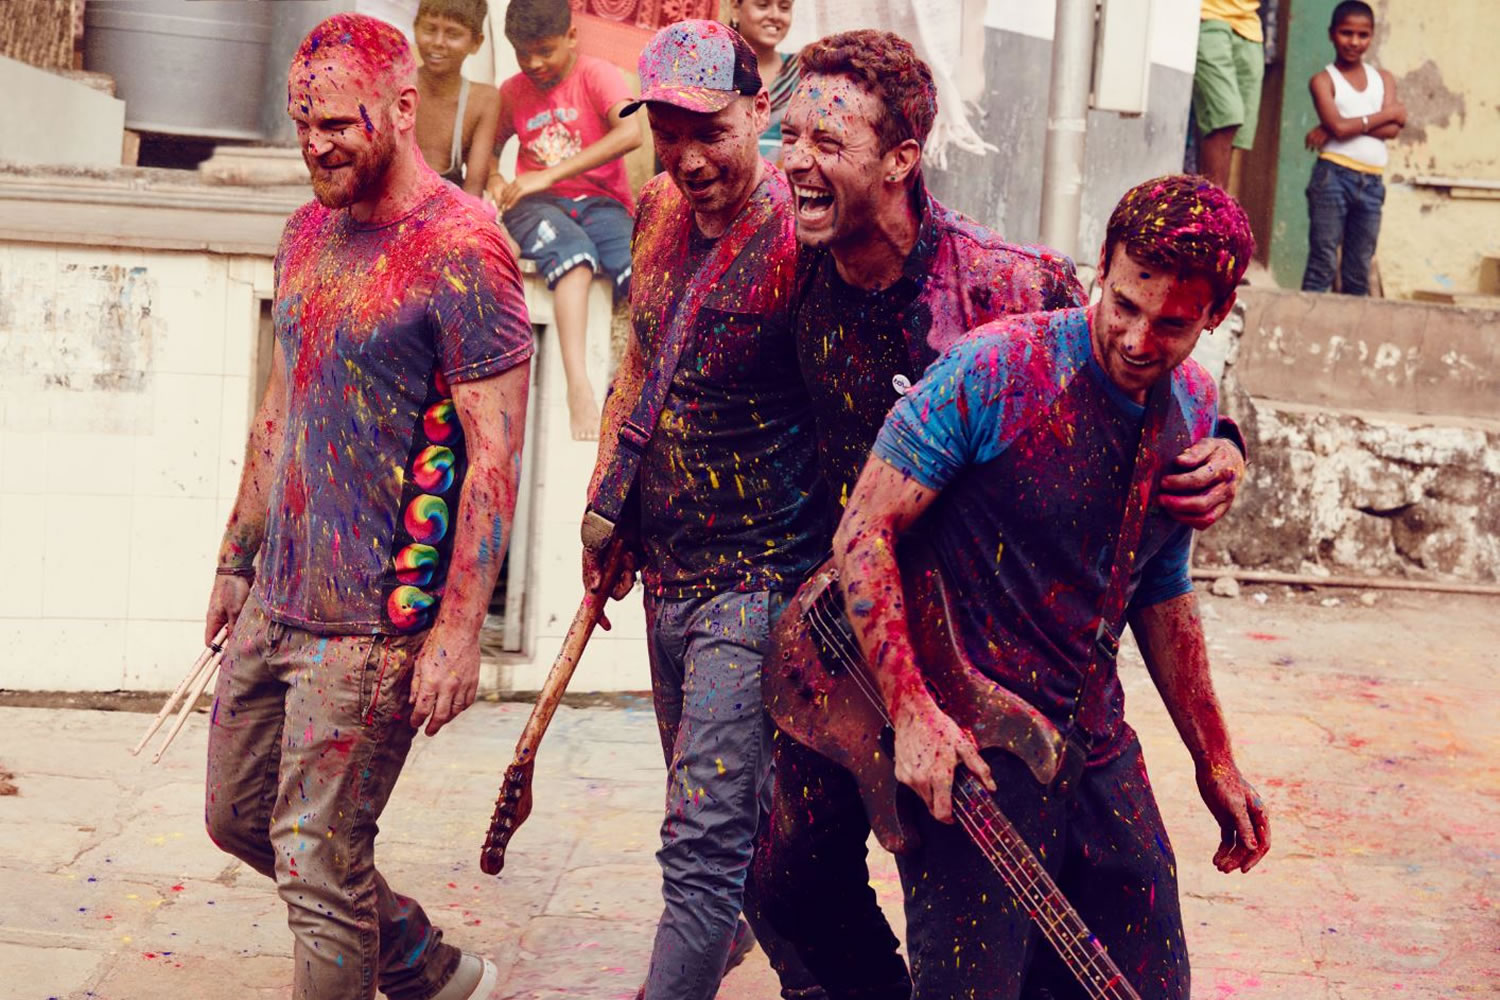 El show de Coldplay arranca a las 22:30 hrs. (Chile).